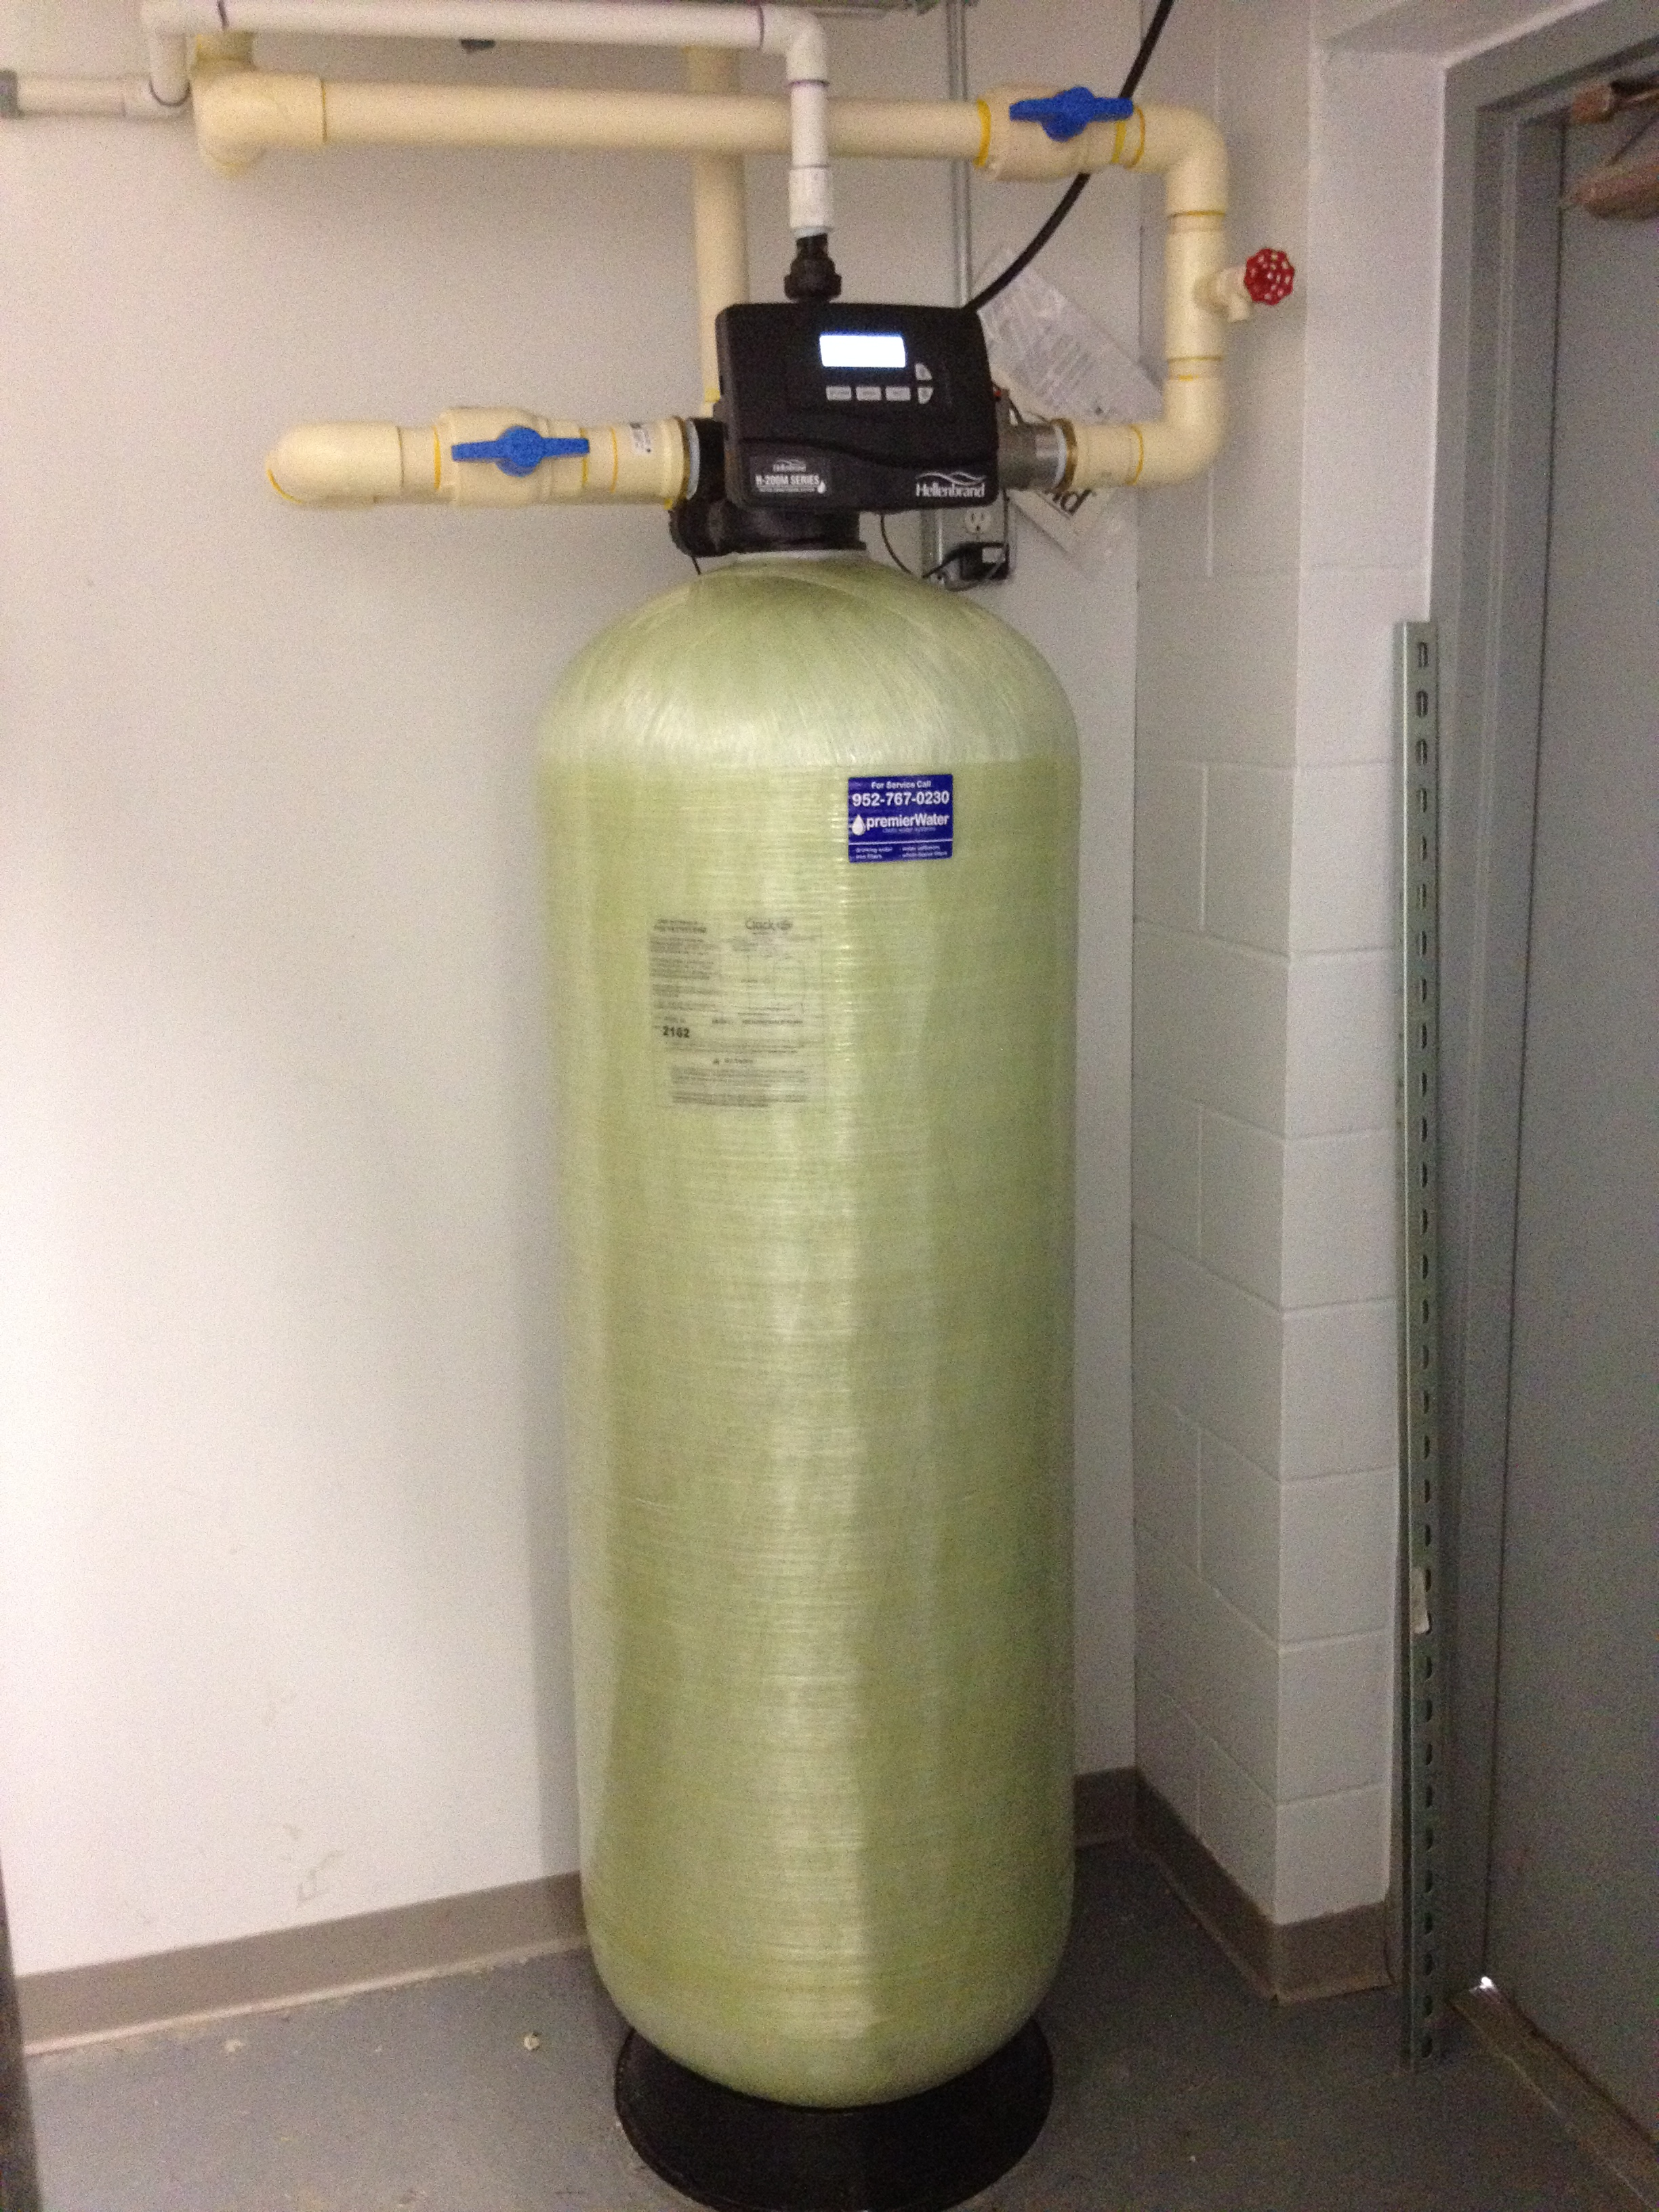 Water Softener Price Water Softener Helps Hopkins Laundromat Get Cleaner Clothes